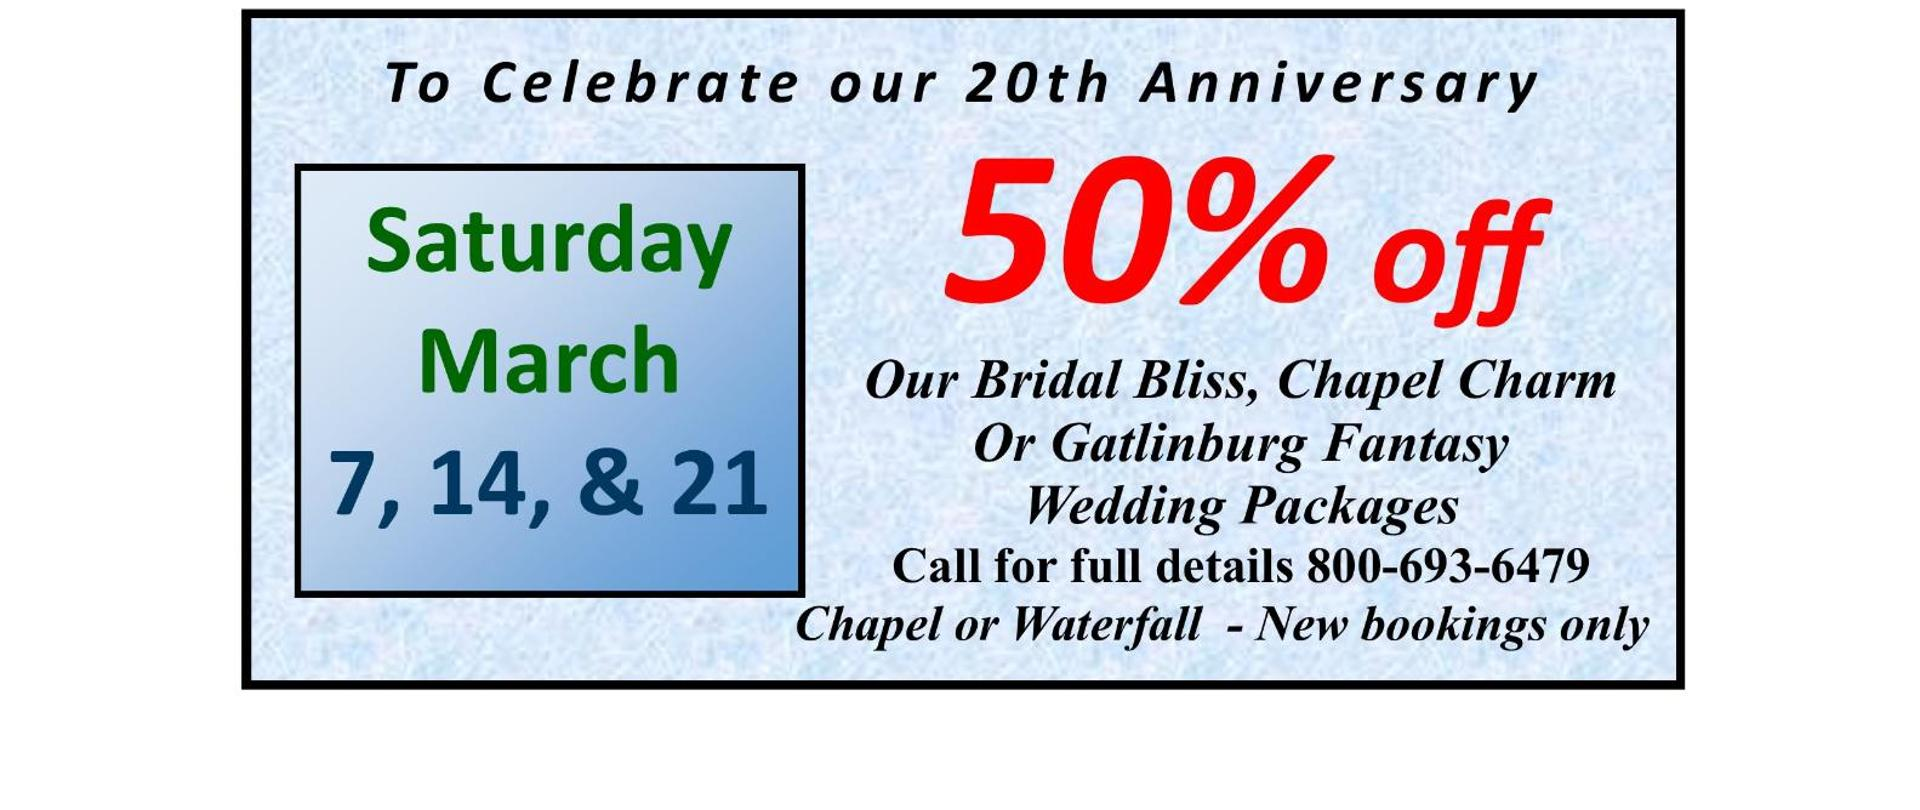 GWC - 20 year anniversary coupon Saturdays in March 2020.jpg